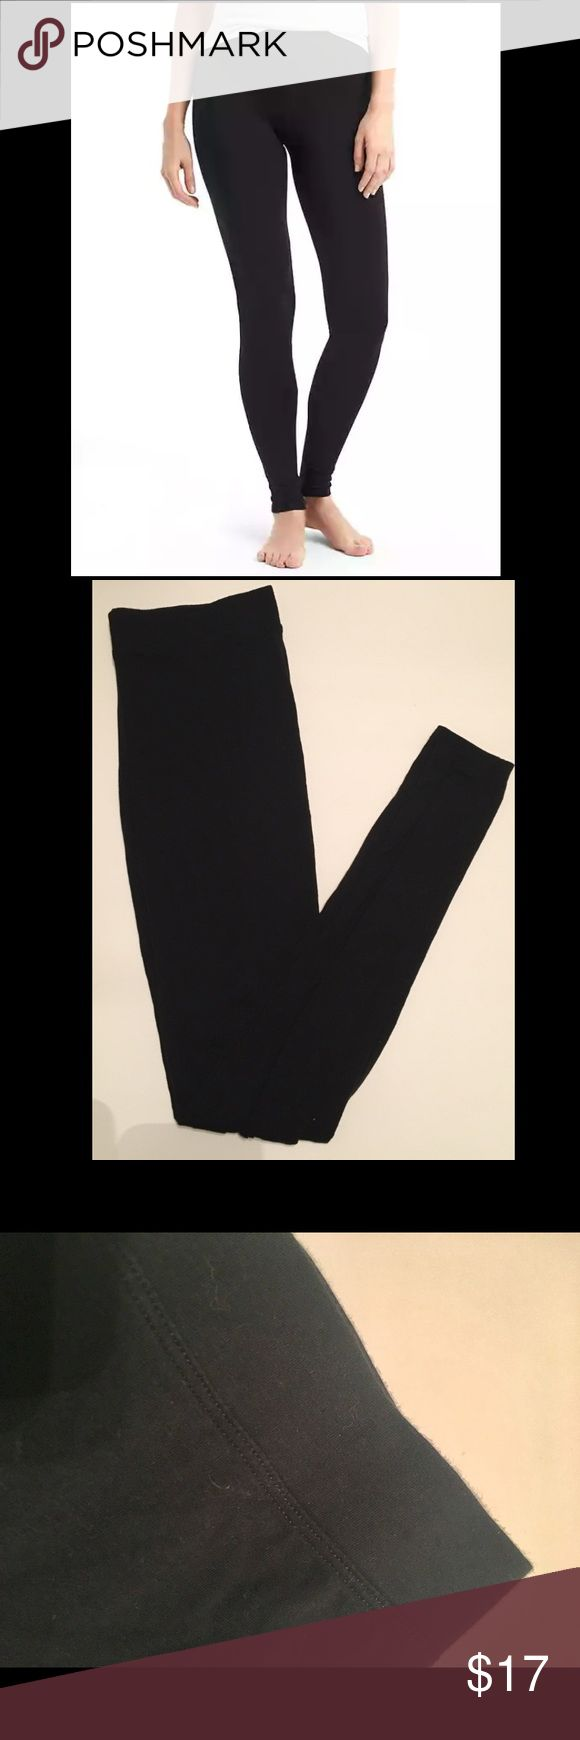 GAP pure body black leggings Nice thick black leggings from Gap Body | Great condition | Only worn a few times GAP Pants Leggings